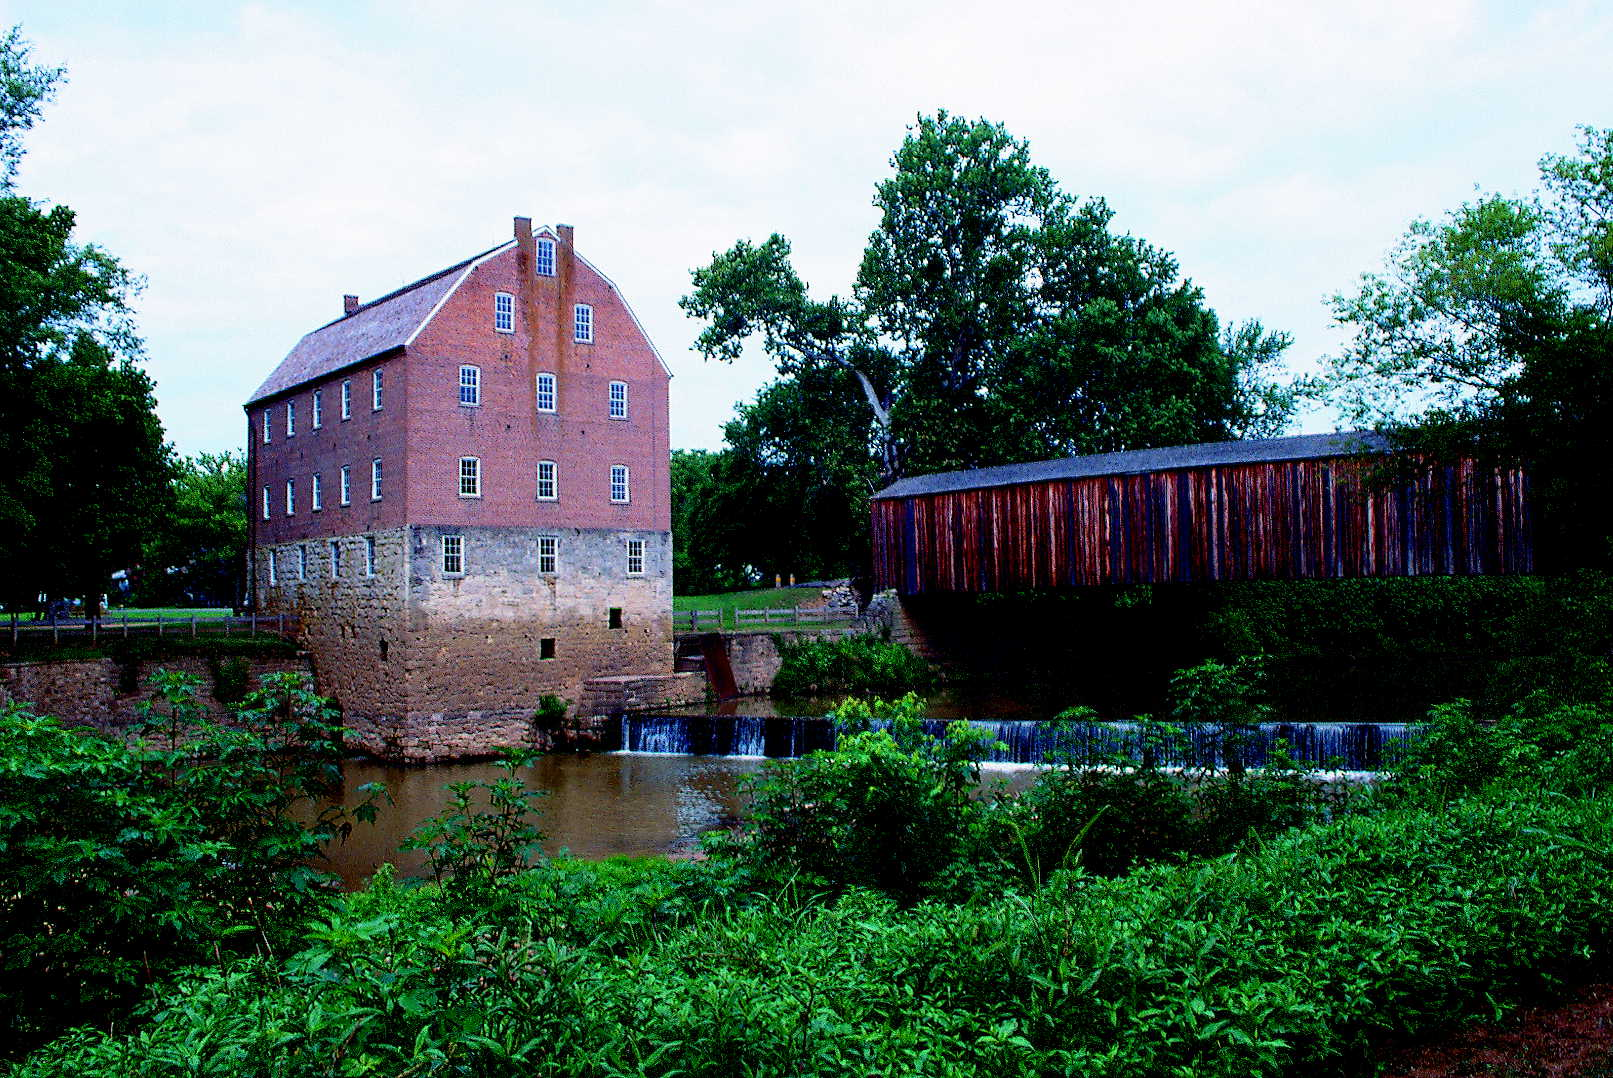 scenic view of the four-story red mill with the adjacent covered bridge with water cascading below